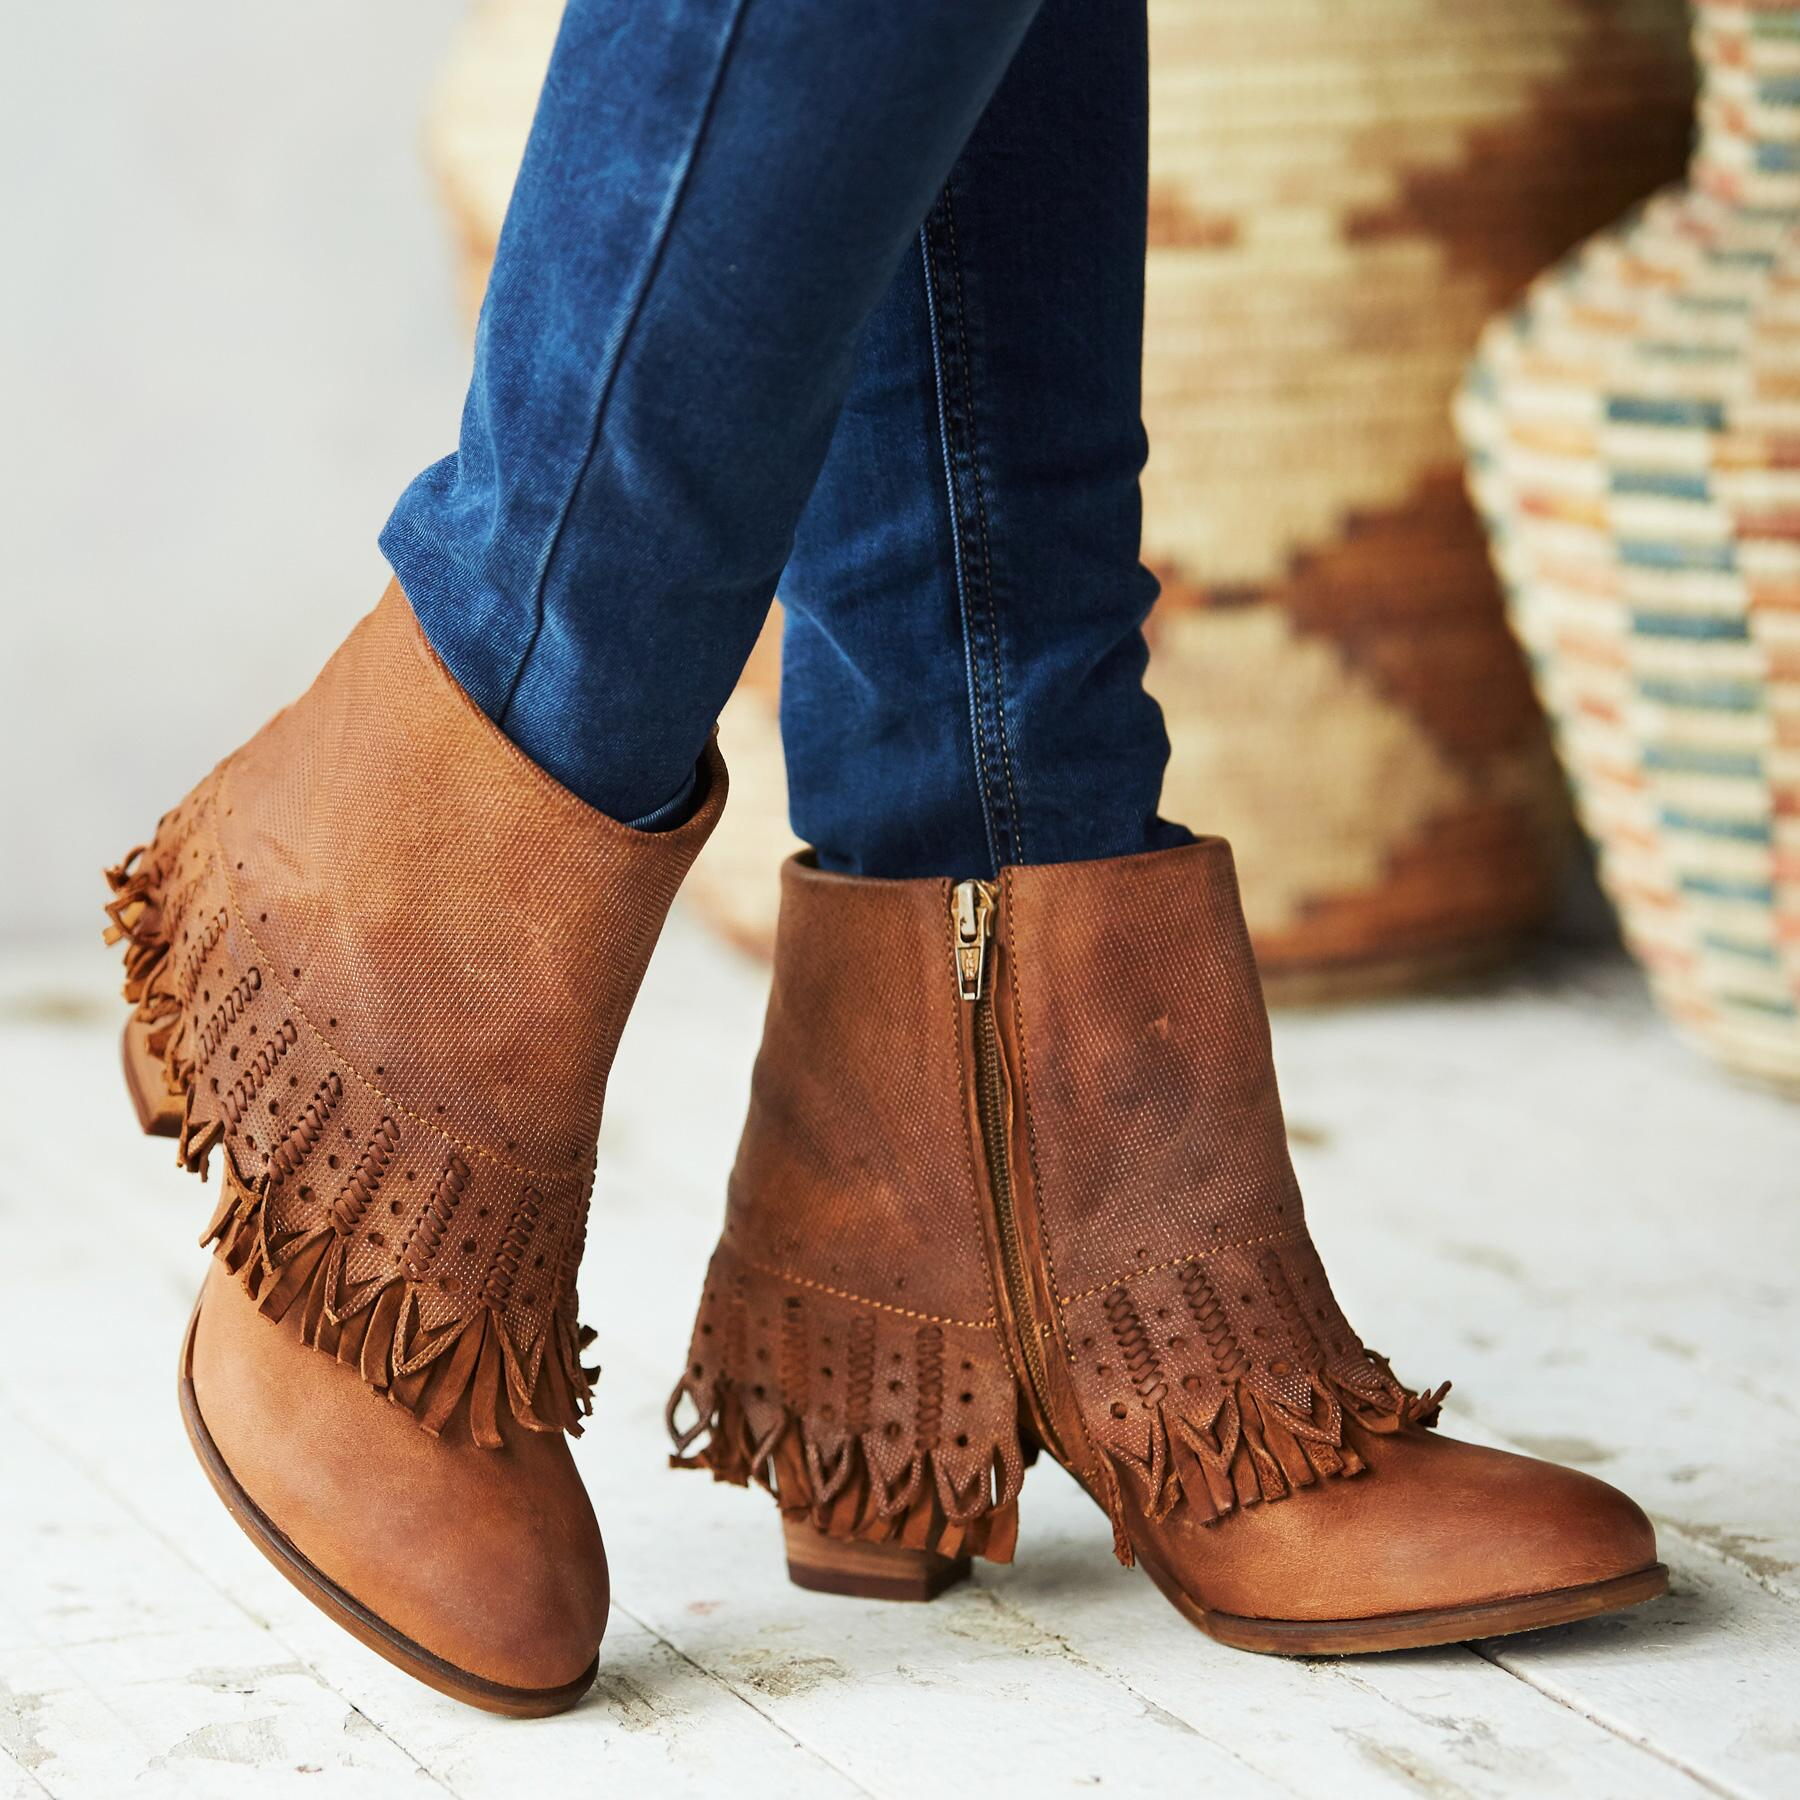 UNCHARTED TERRITORY BOOTS: View 1